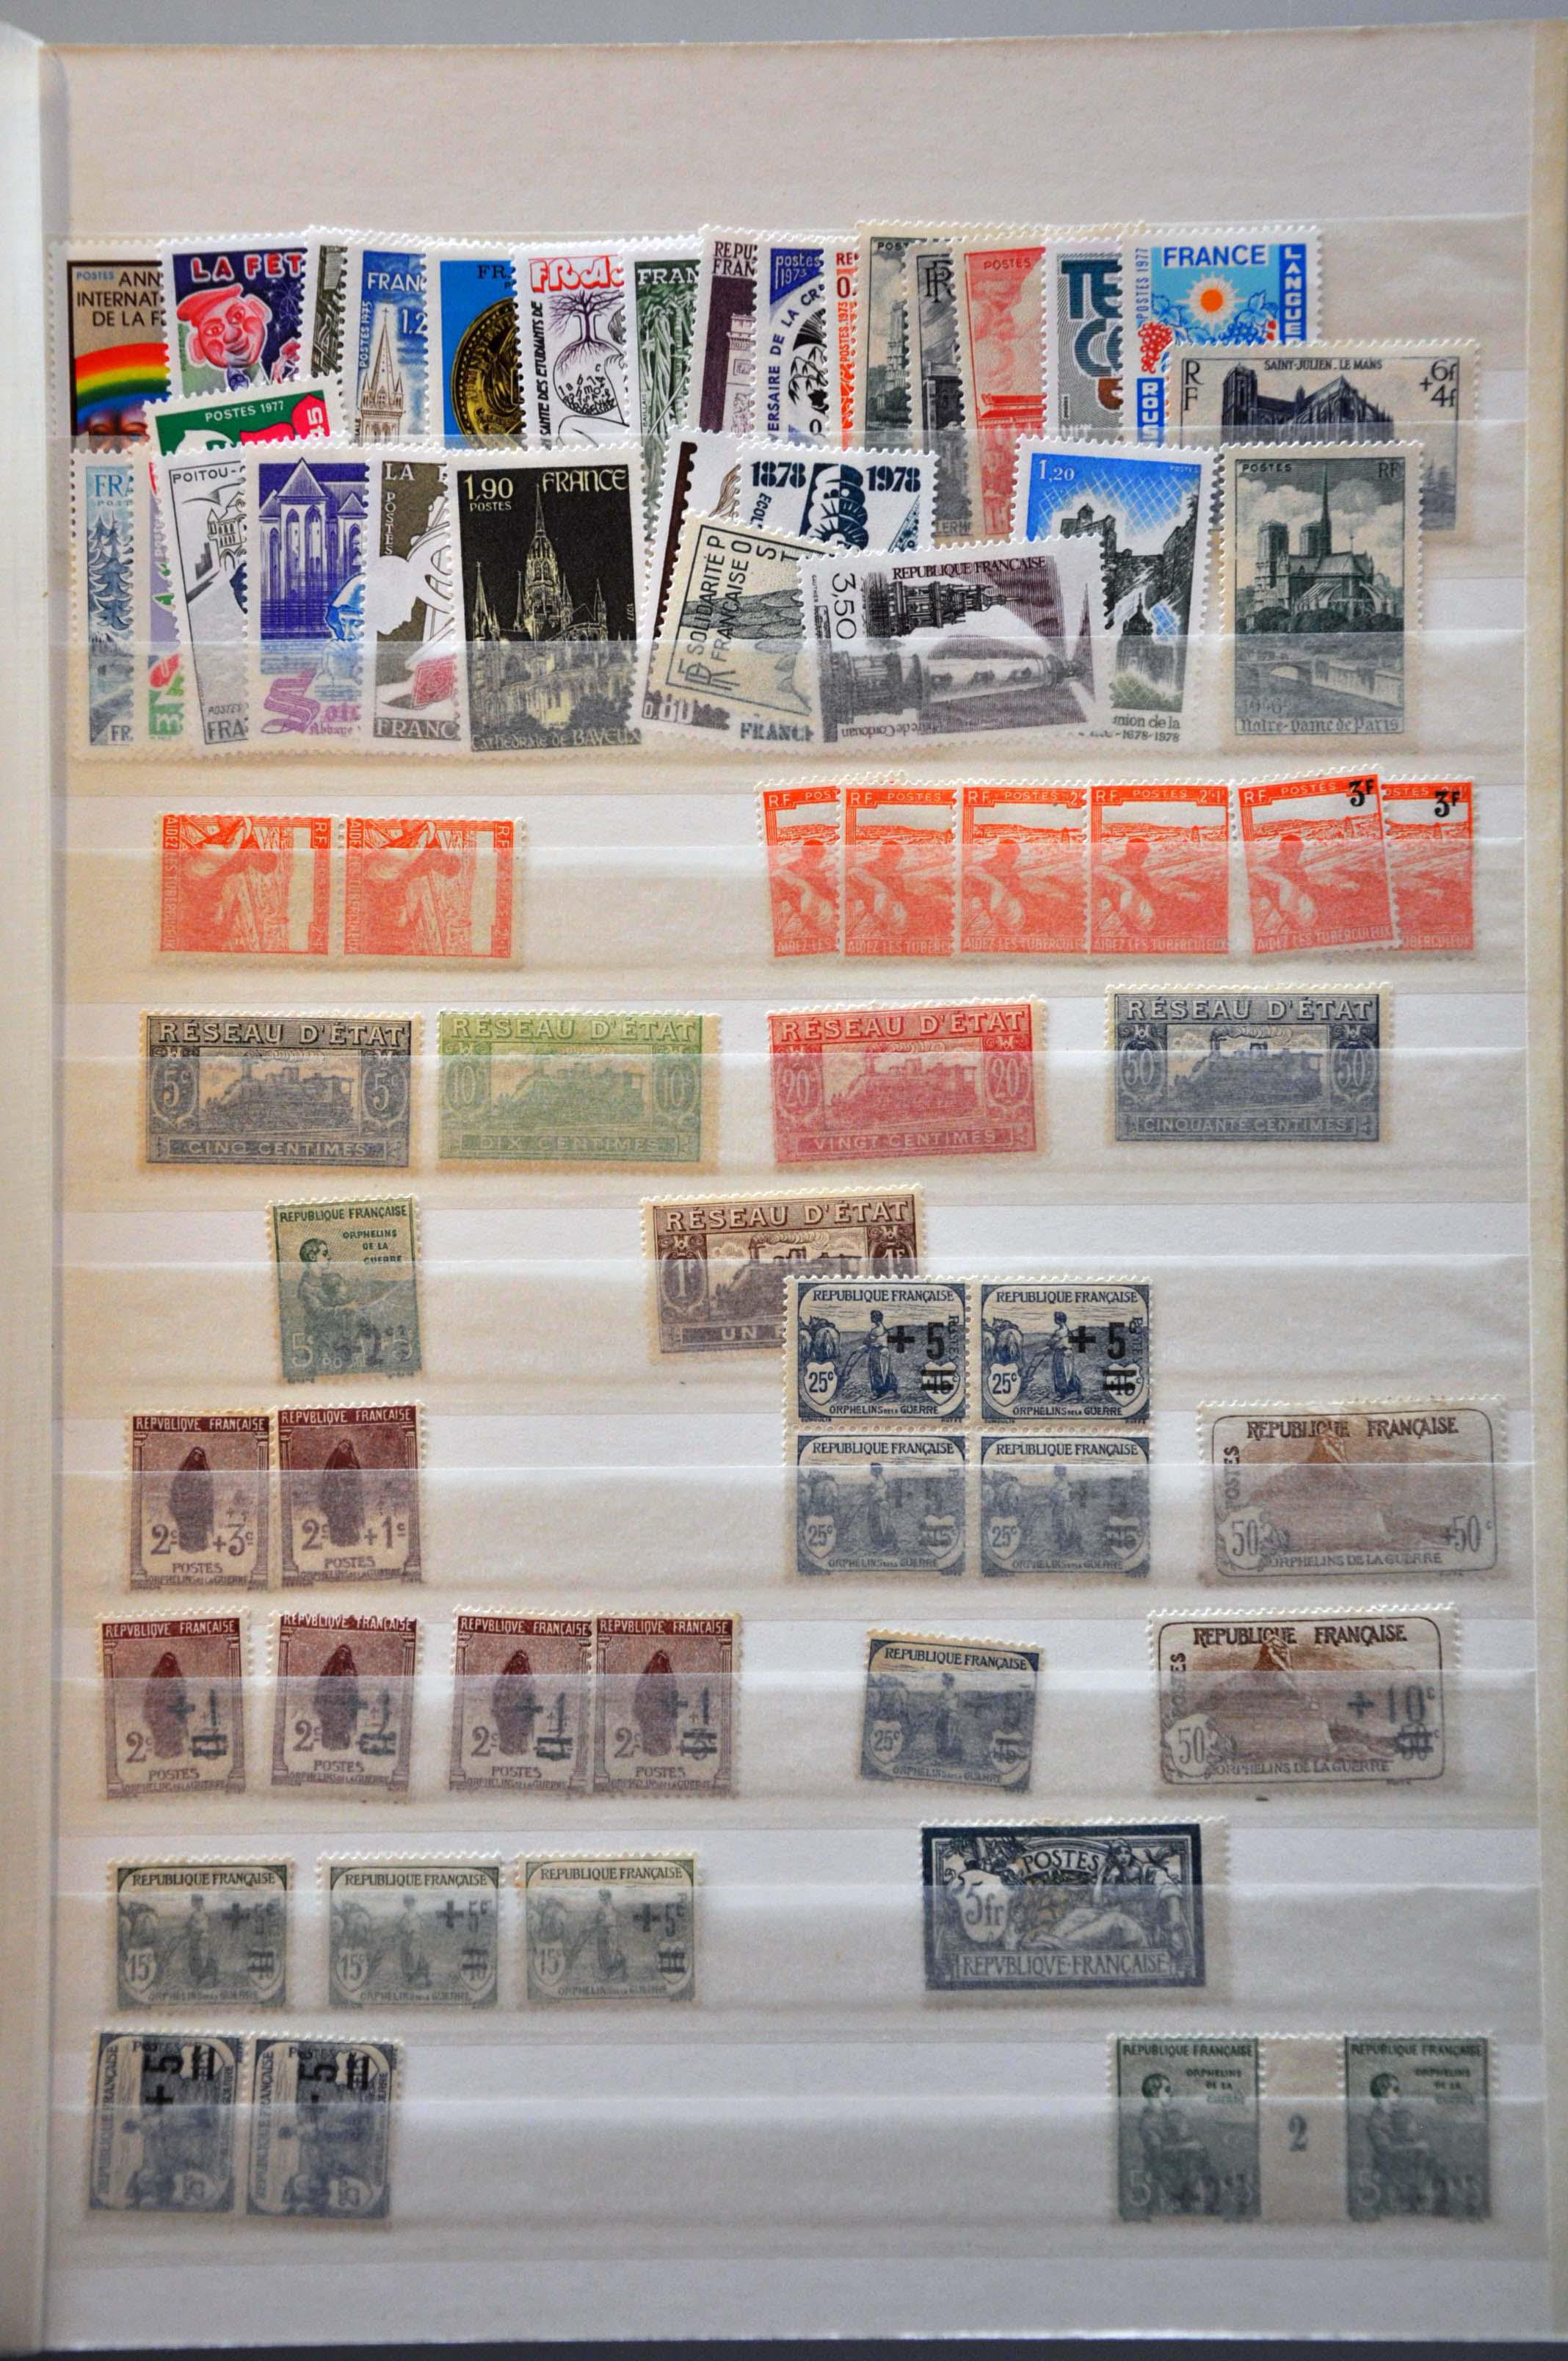 Lot 531 - France and former colonies France -  Corinphila Veilingen Auction 244 -Netherlands and former colonies, WW2 Postal History, Bosnia, German and British colonies, Egypt. - Day 1